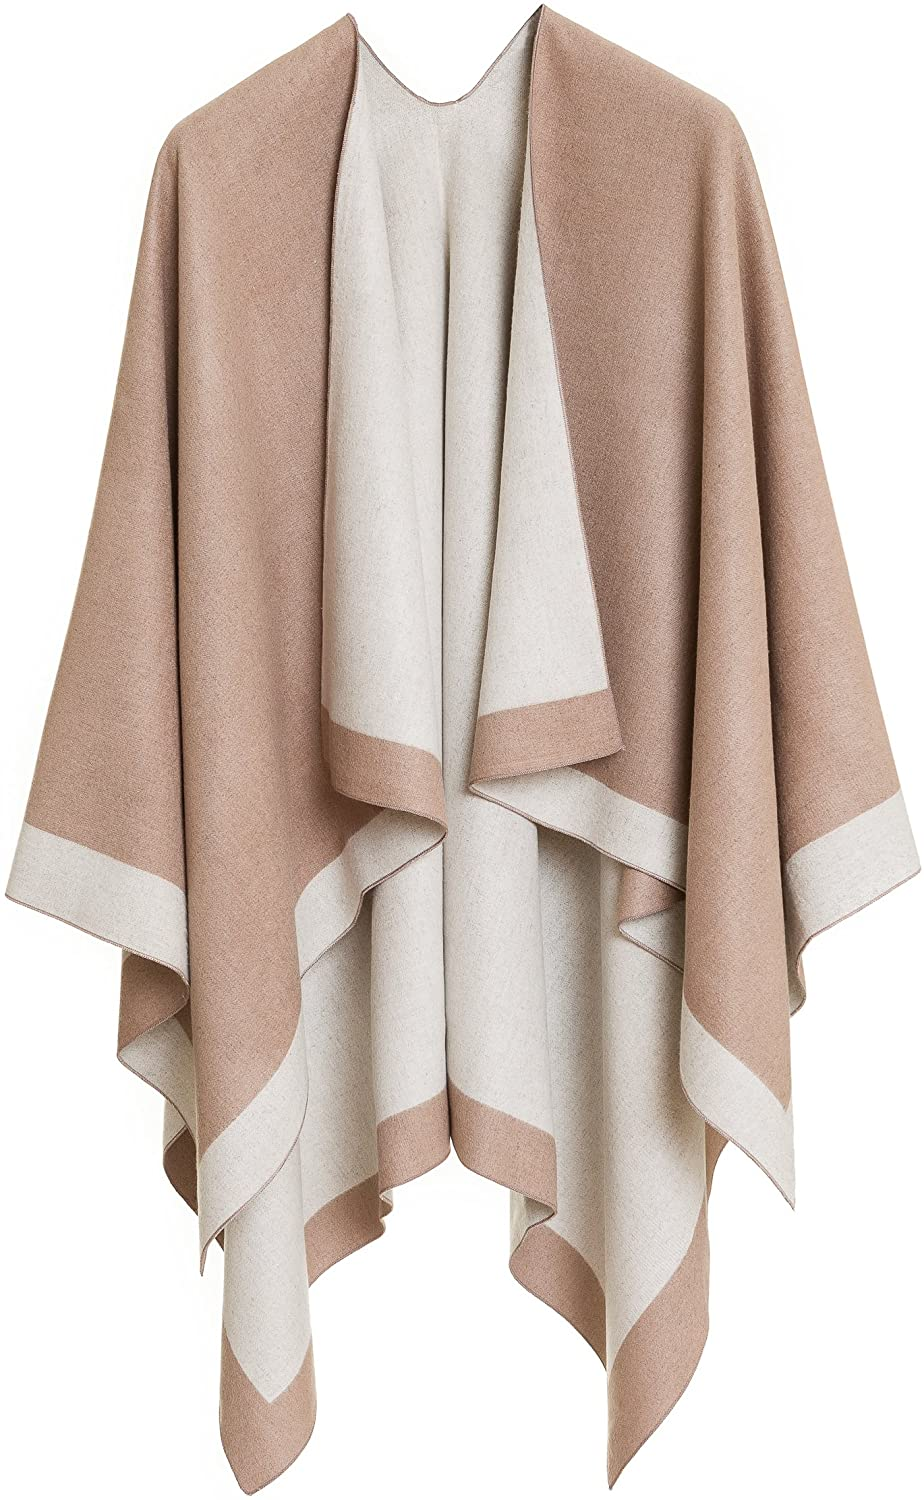 MELIFLUOS DESIGNED IN SPAIN Women's Shawl Wrap Poncho Ruana Cape Cardigan Sweater Open Front for Spring Summer